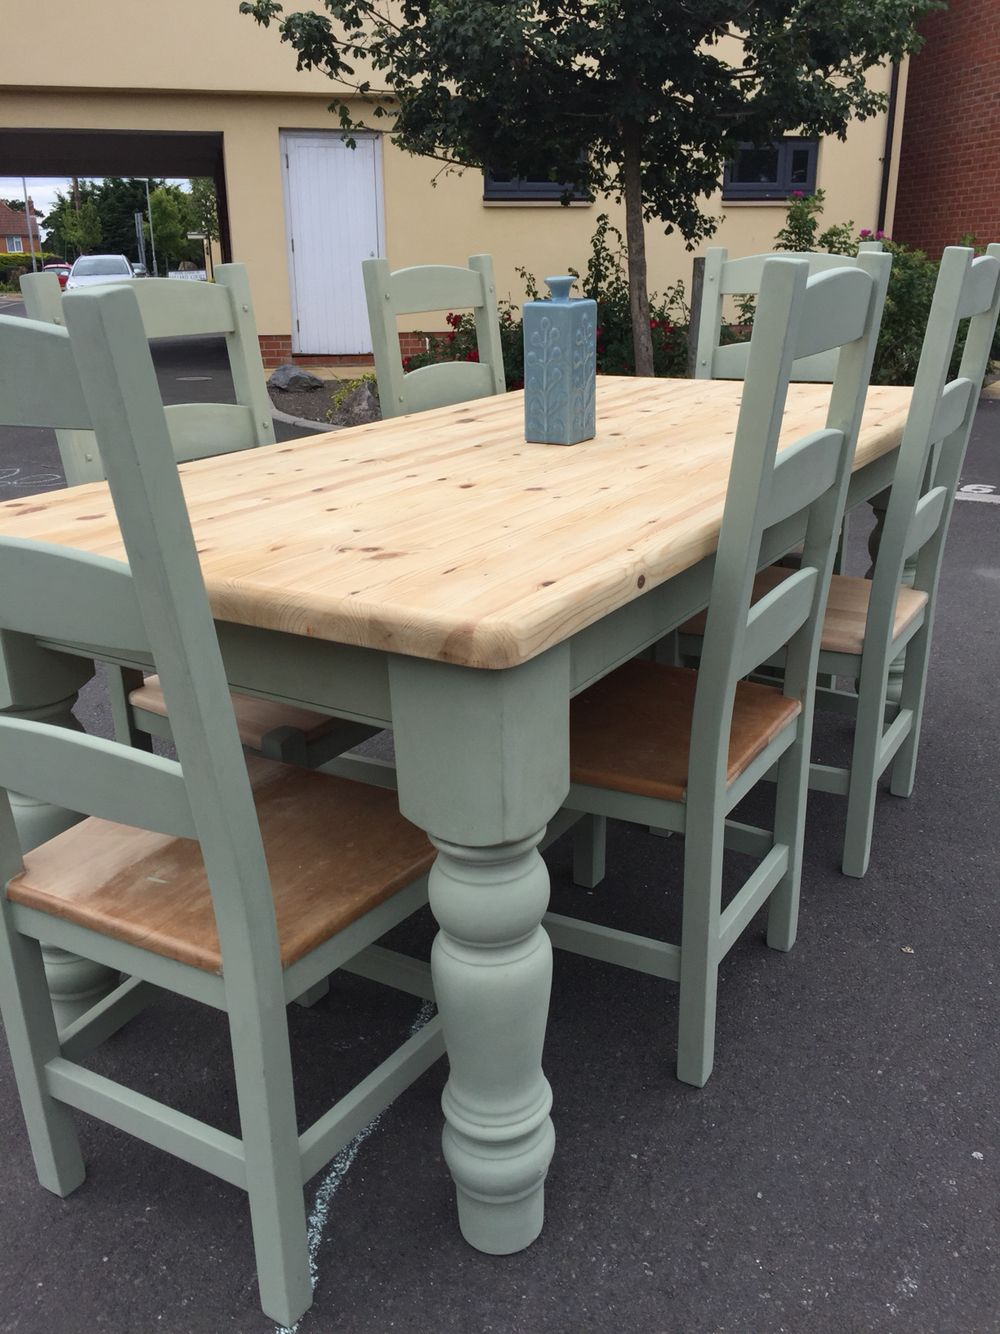 6ft Farmhouse Table And 6 Chairs In Sage Green Painted Dining